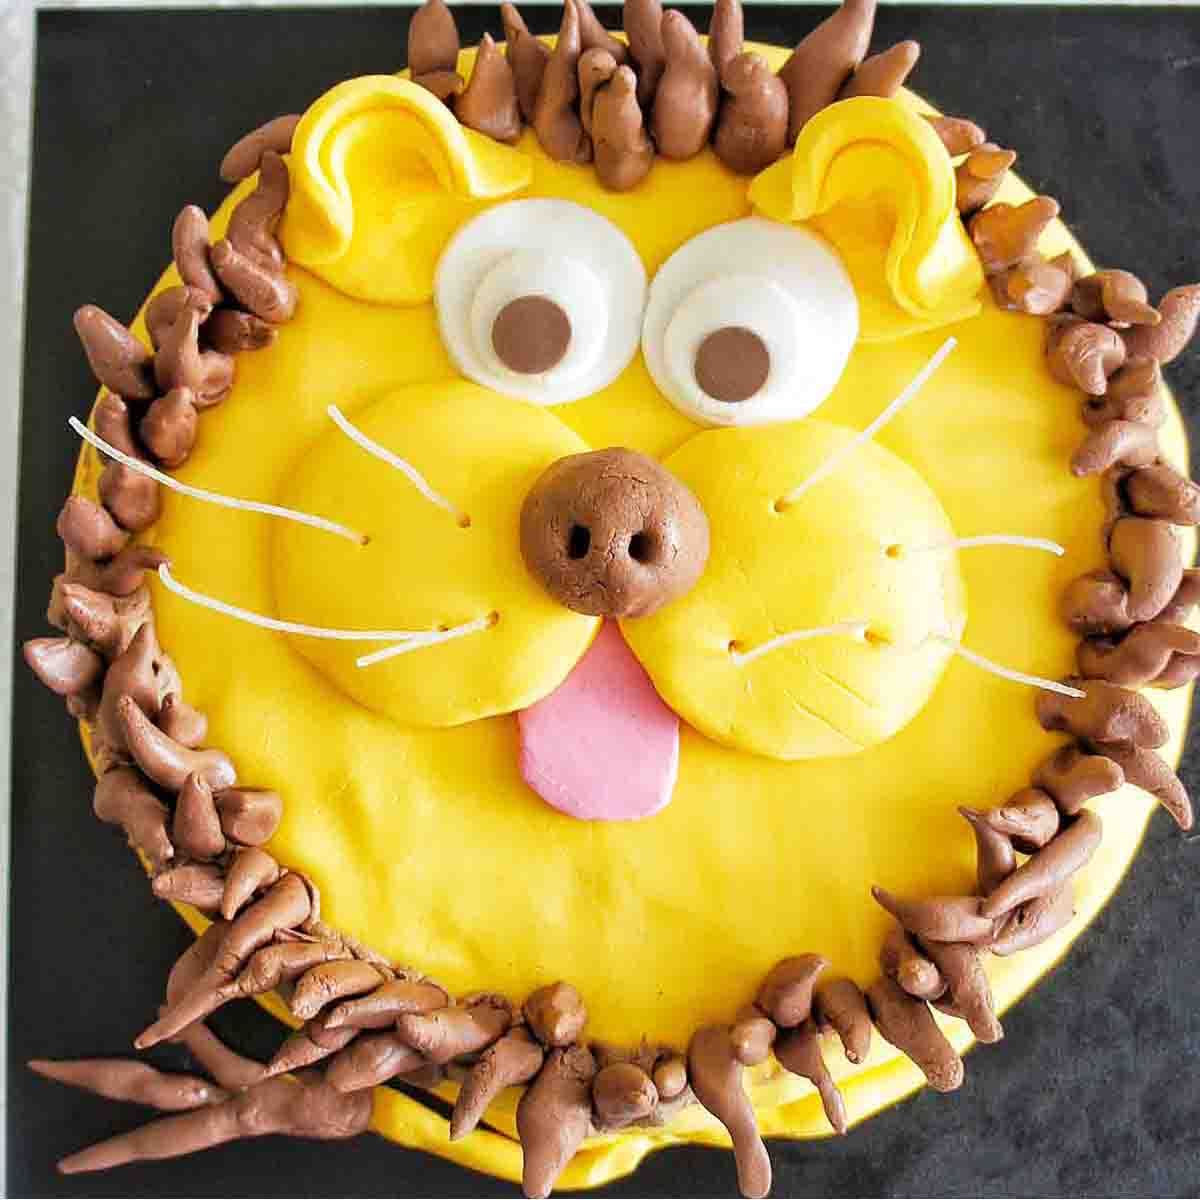 Sensational Lion Cake Recipe Video Sweet Caramel Sunday Personalised Birthday Cards Paralily Jamesorg